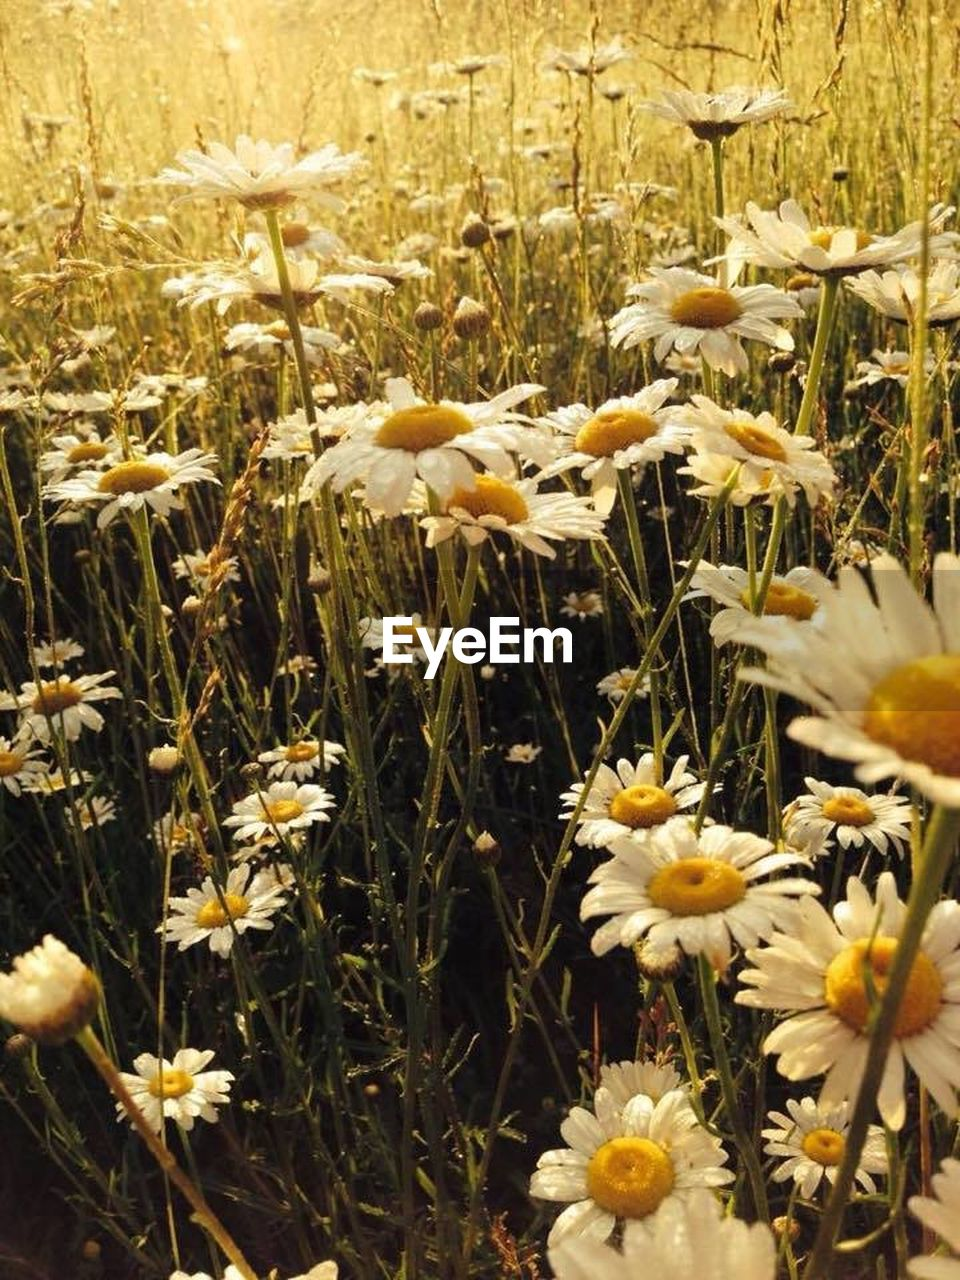 flower, growth, nature, plant, field, delicate, beauty in nature, yellow, grass, freshness, petal, spring, summer, no people, outdoors, flower head, fragility, blooming, poppy, day, close-up